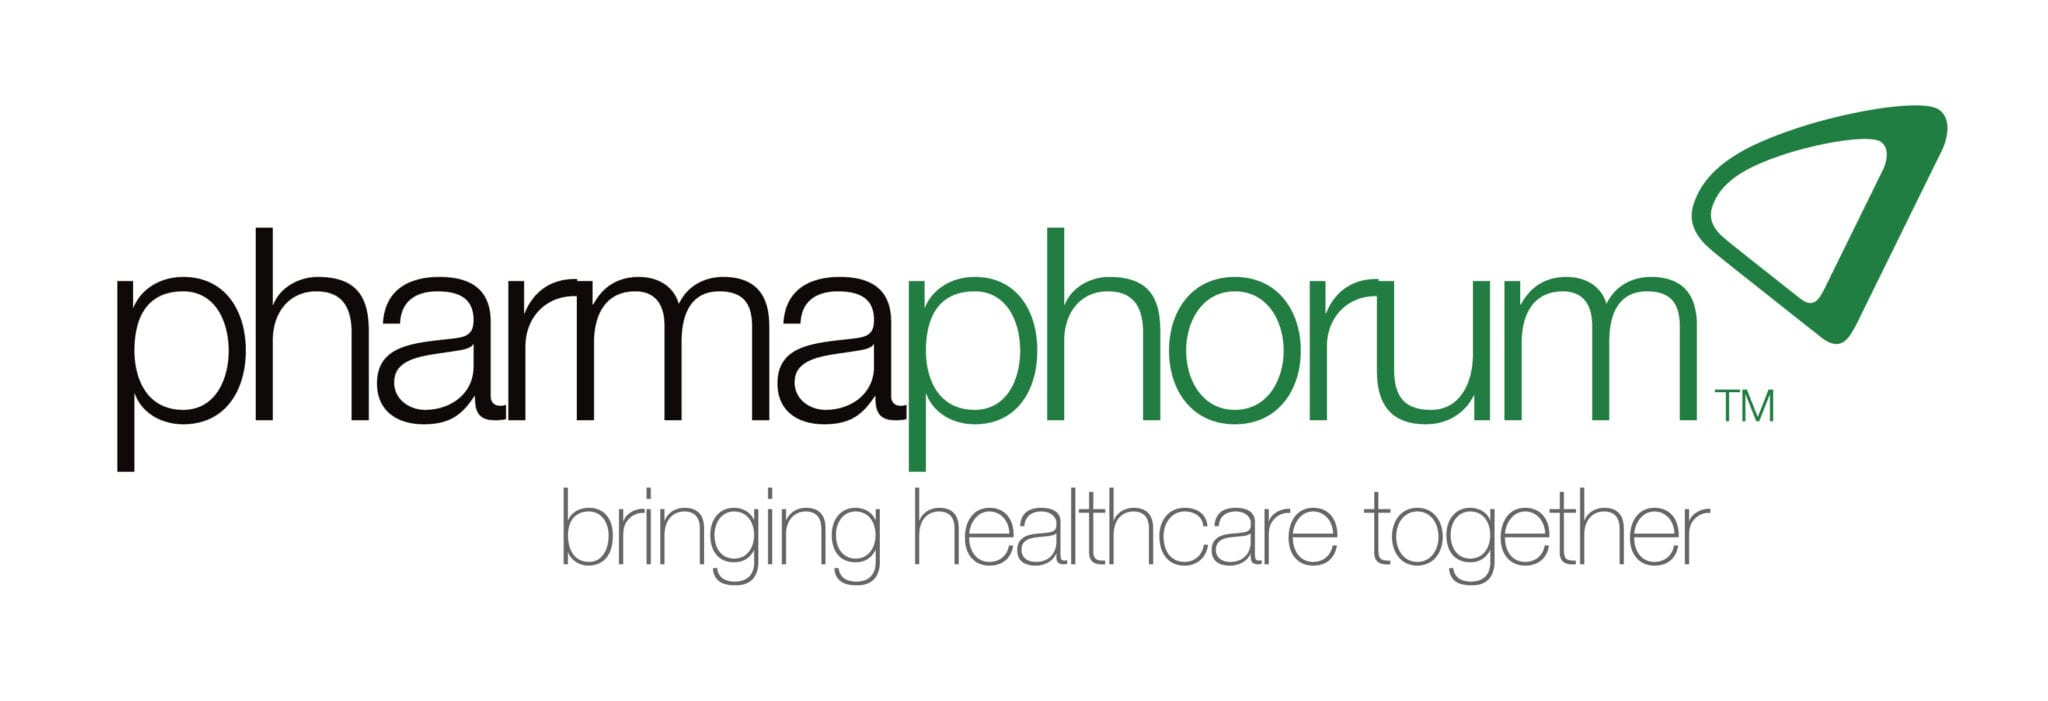 pharmaphorum-logo-01-scaled